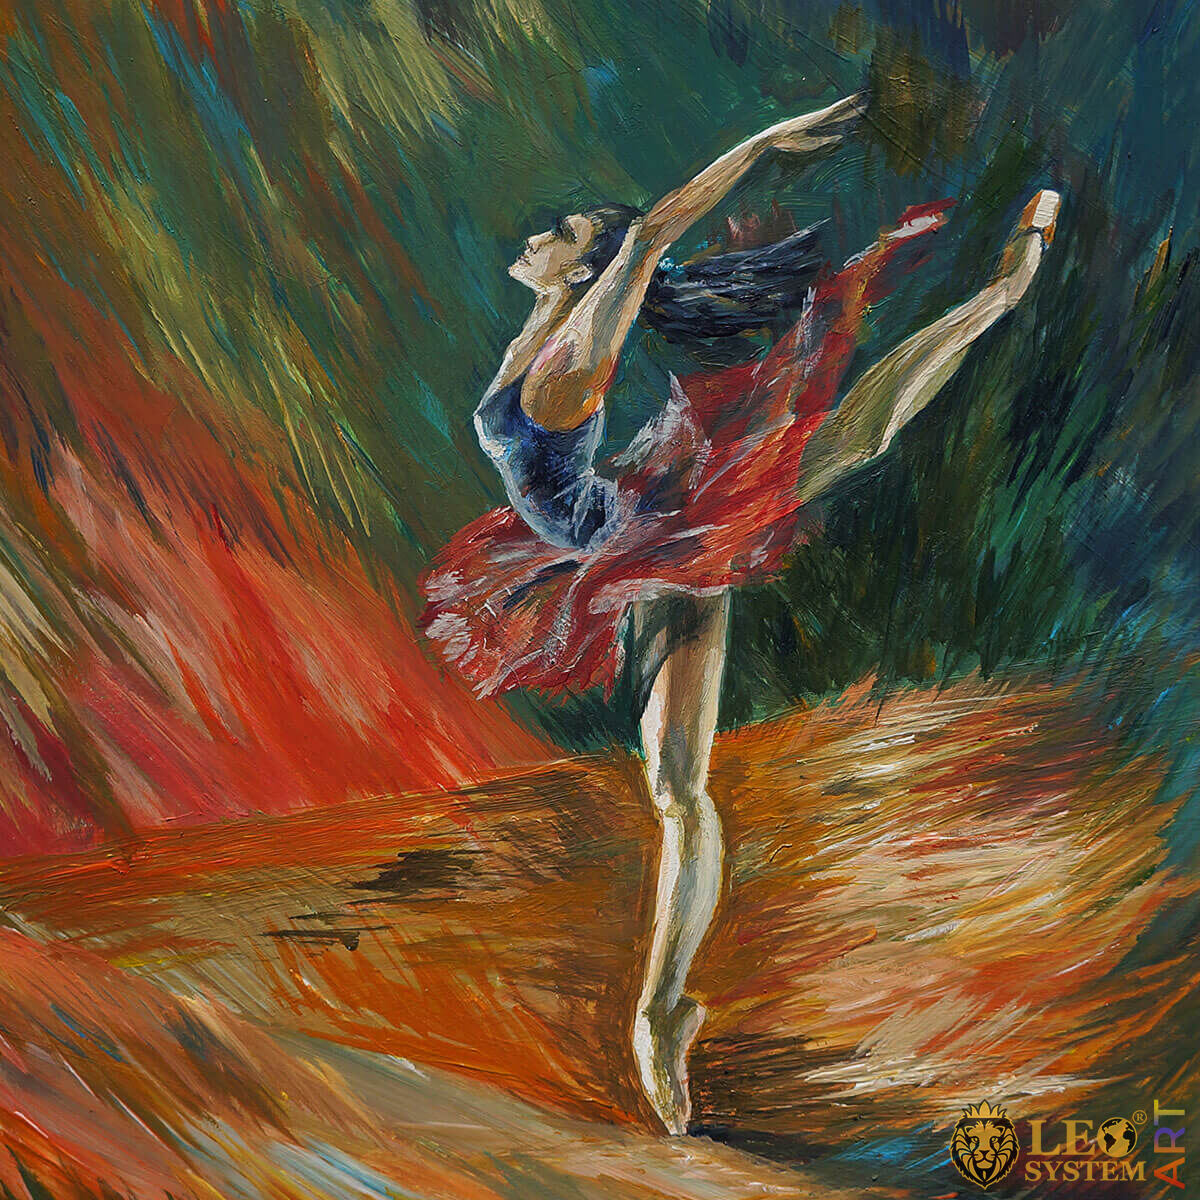 Painting with a dancing ballerina in a red tutu